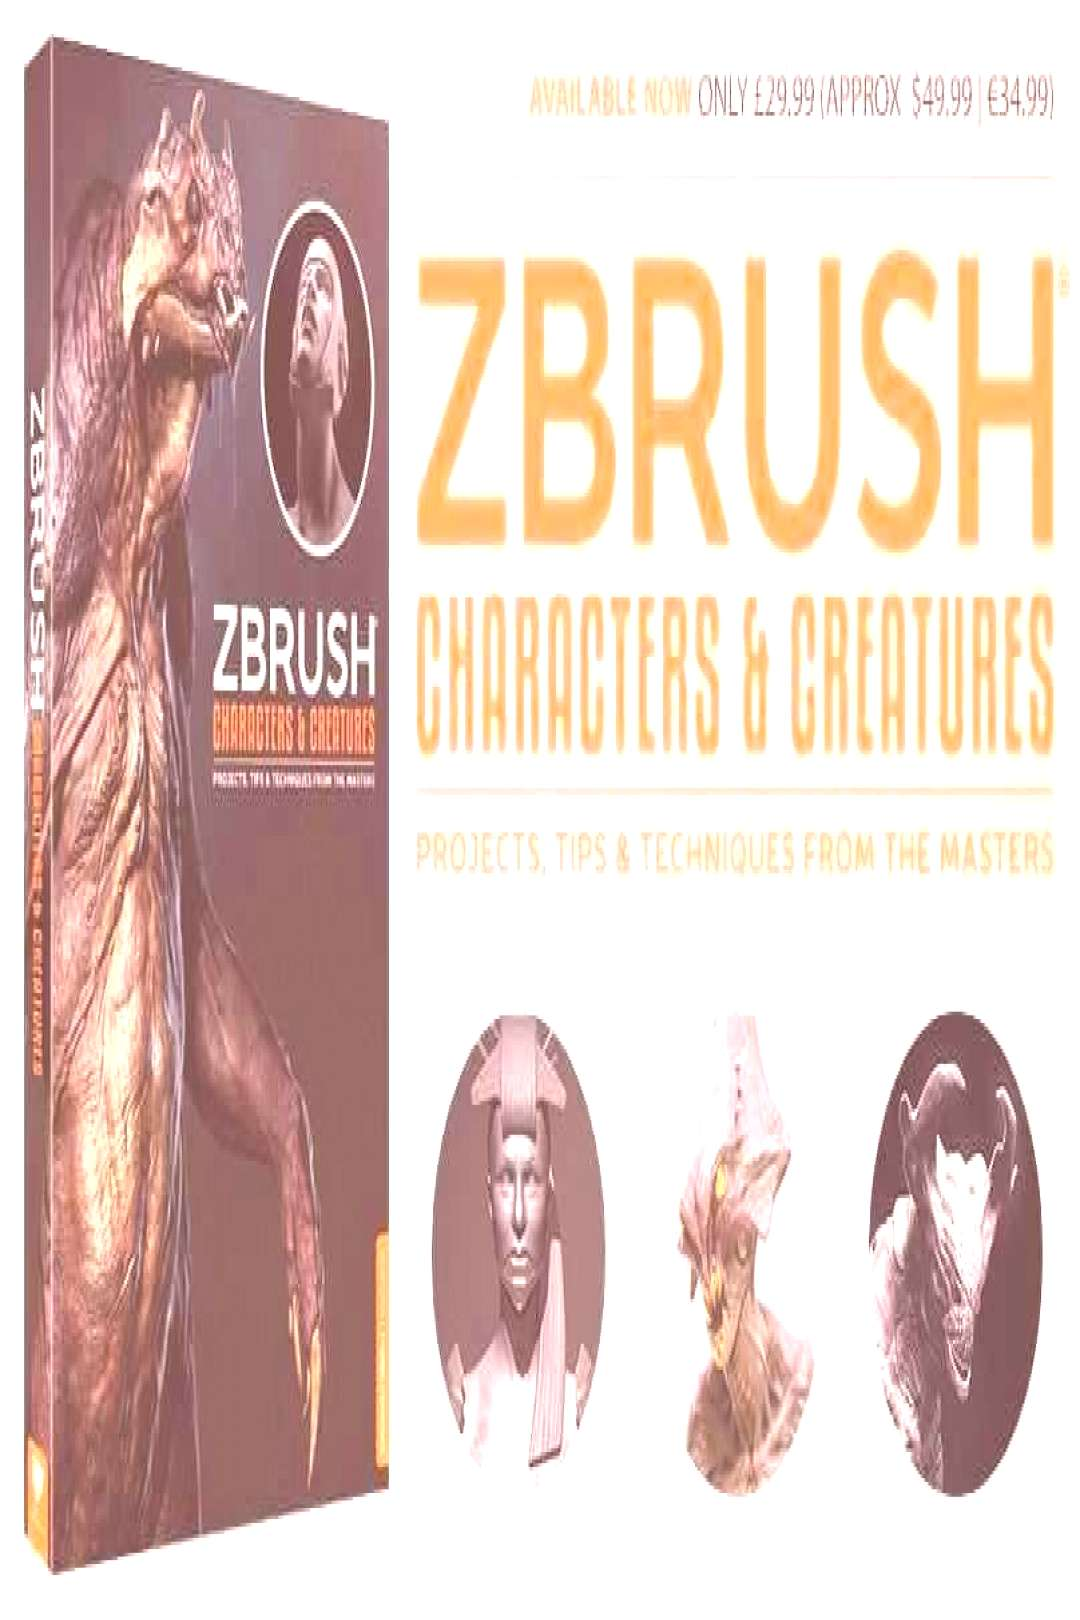 Zbrush Characters Virtual reality - -You can find Zbrush and more on our ...